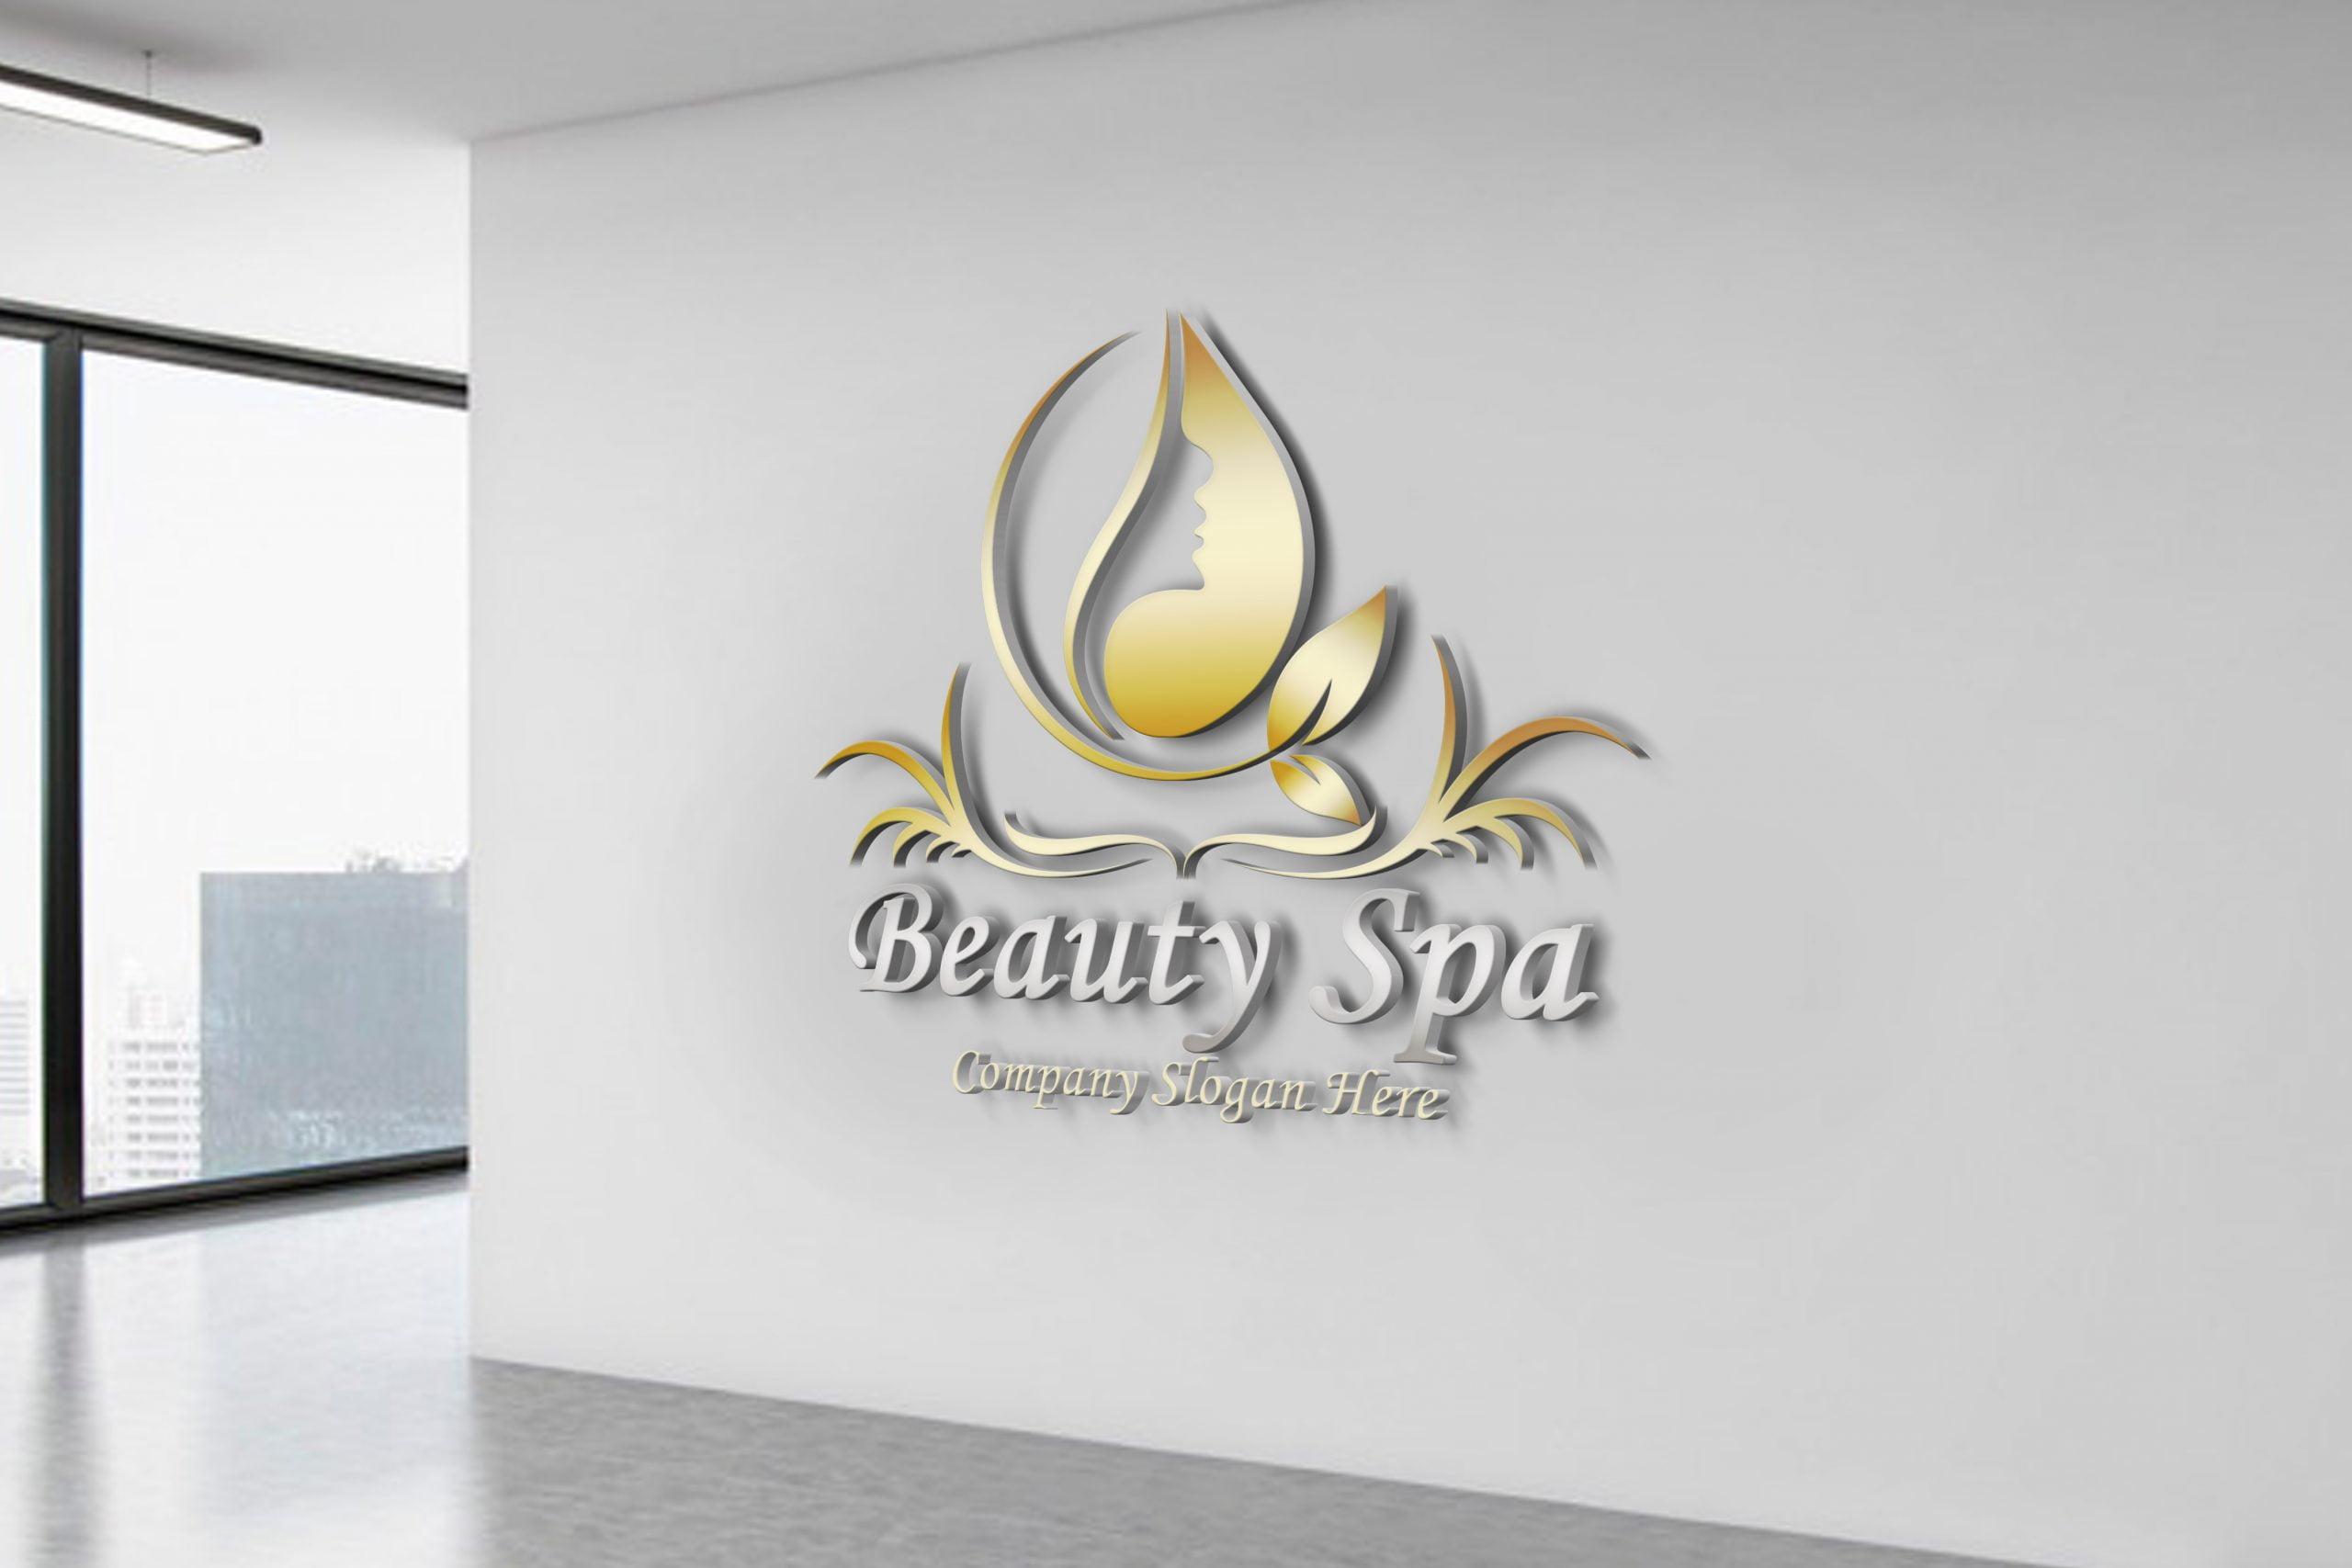 Free Beauty&Spa Logo Template Download